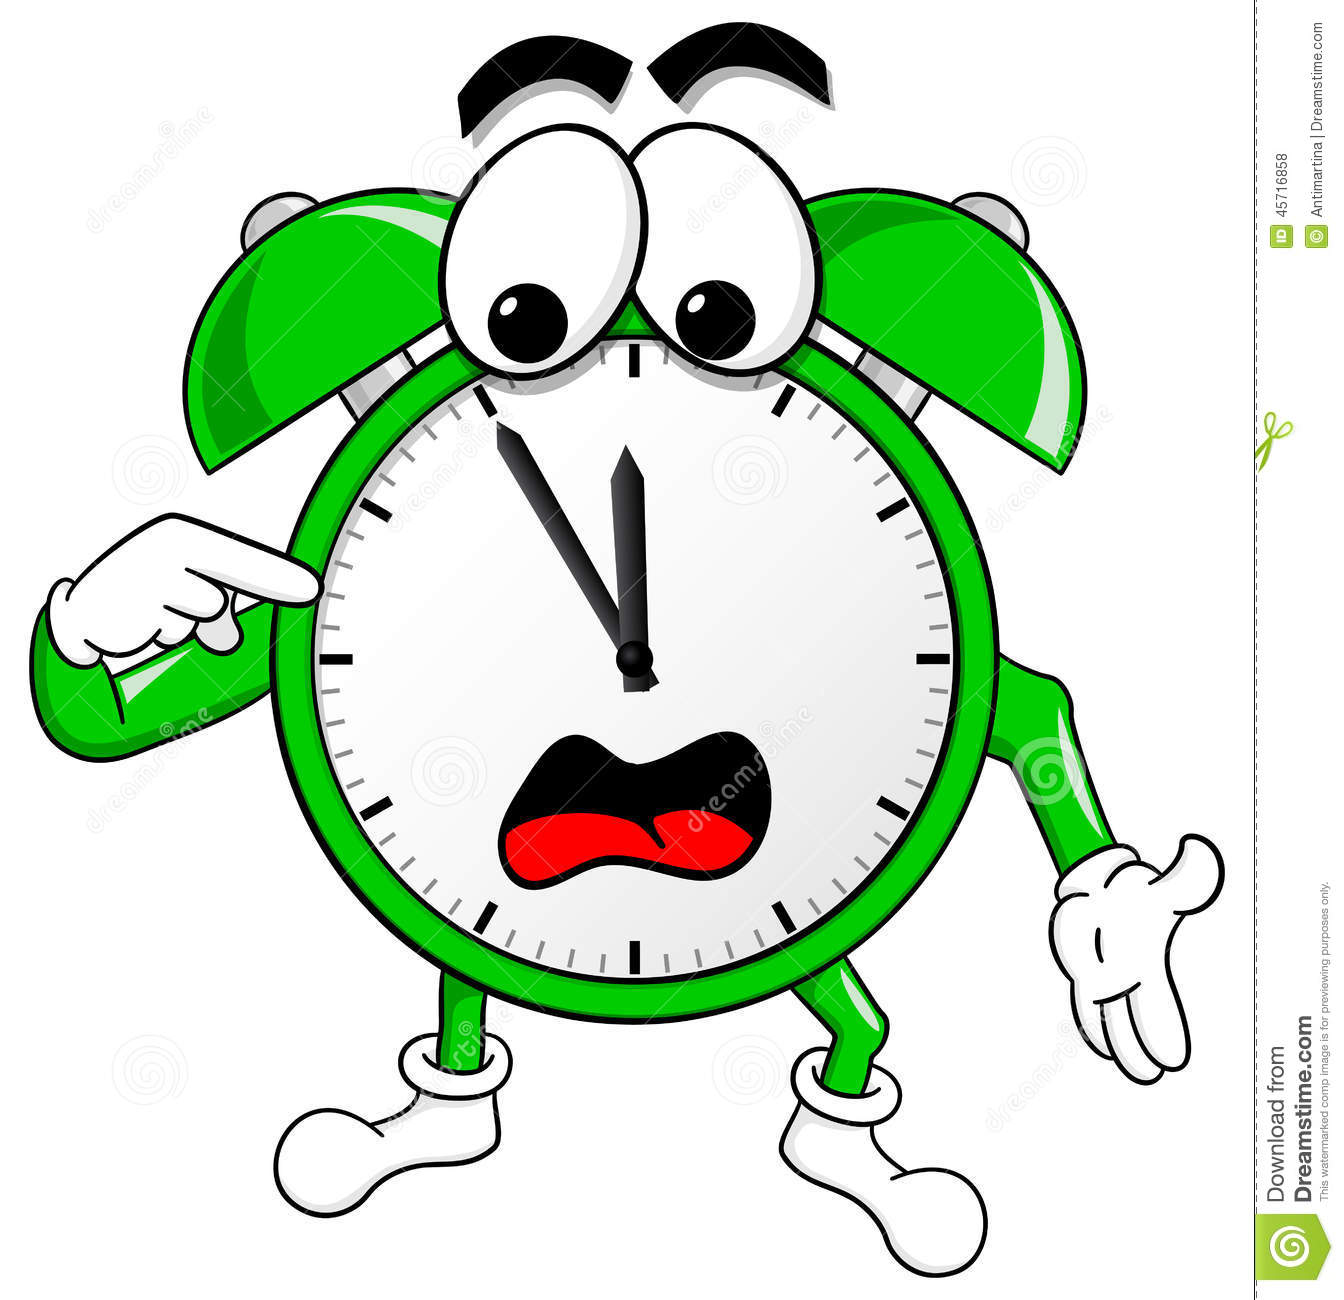 The eleventh hour clipart #4